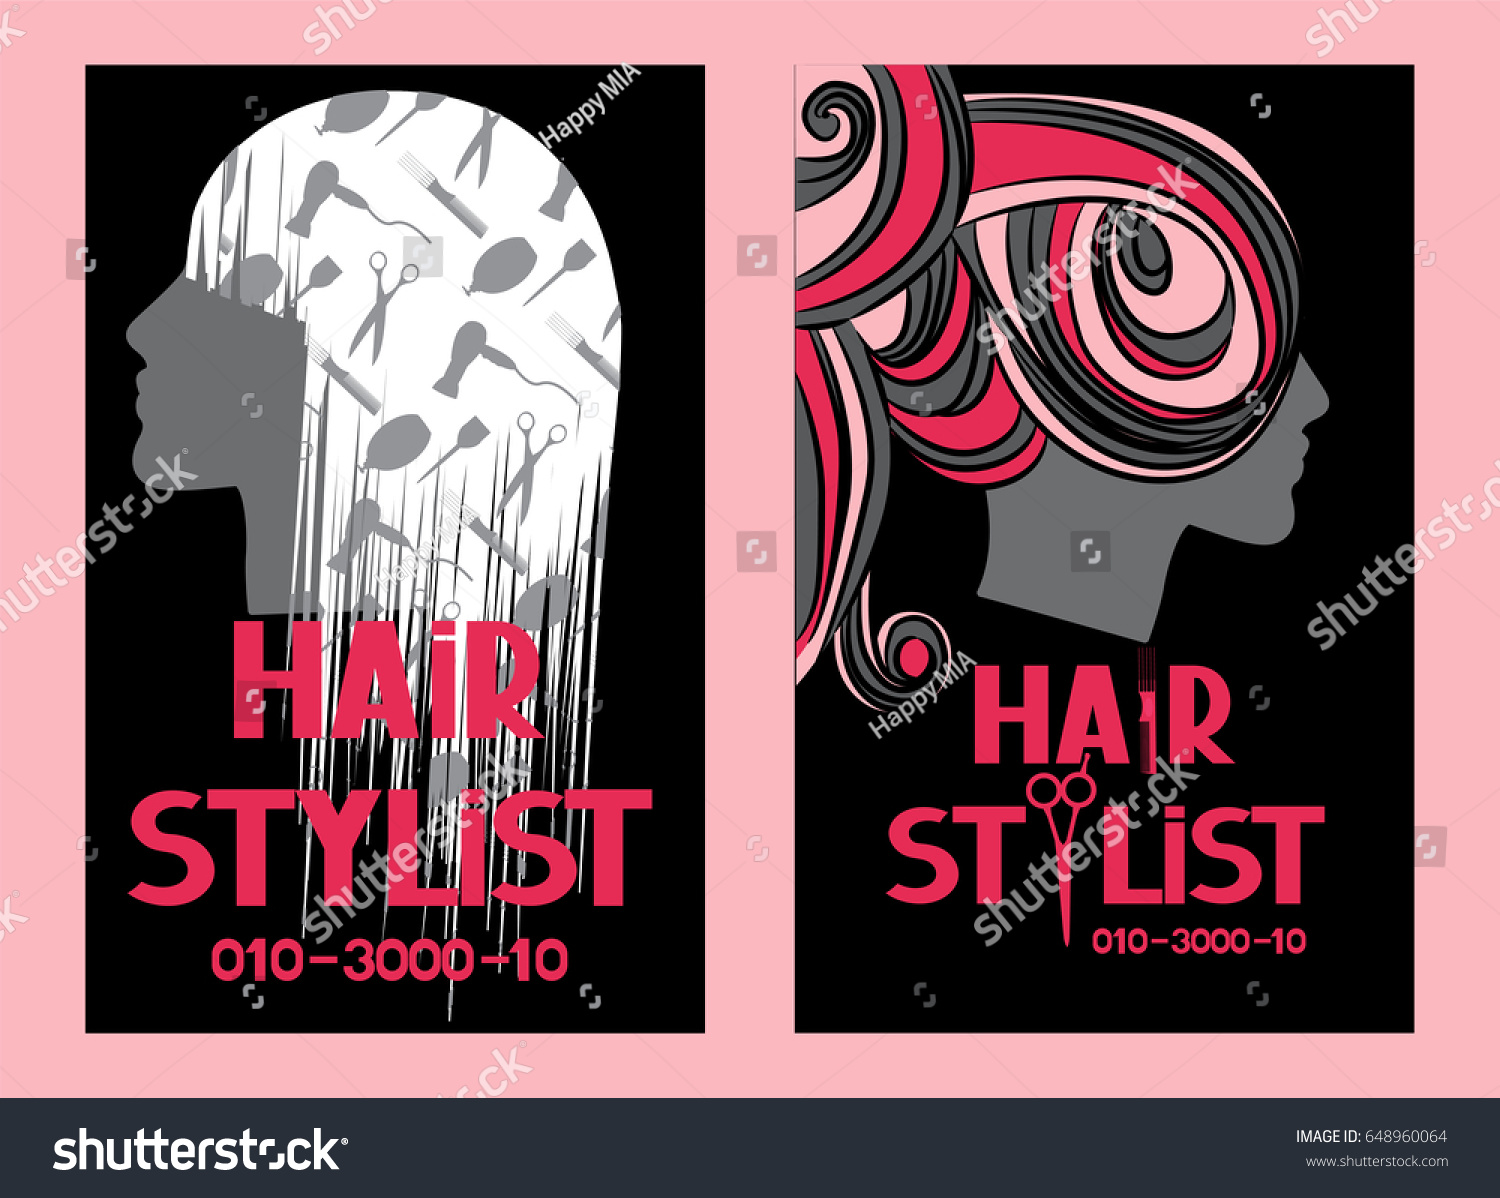 Hair stylist business cards ideas image collections free hairstylist business cards womans head silhouette stock vector hairstylist business cards with womans head silhouette and magicingreecefo Choice Image